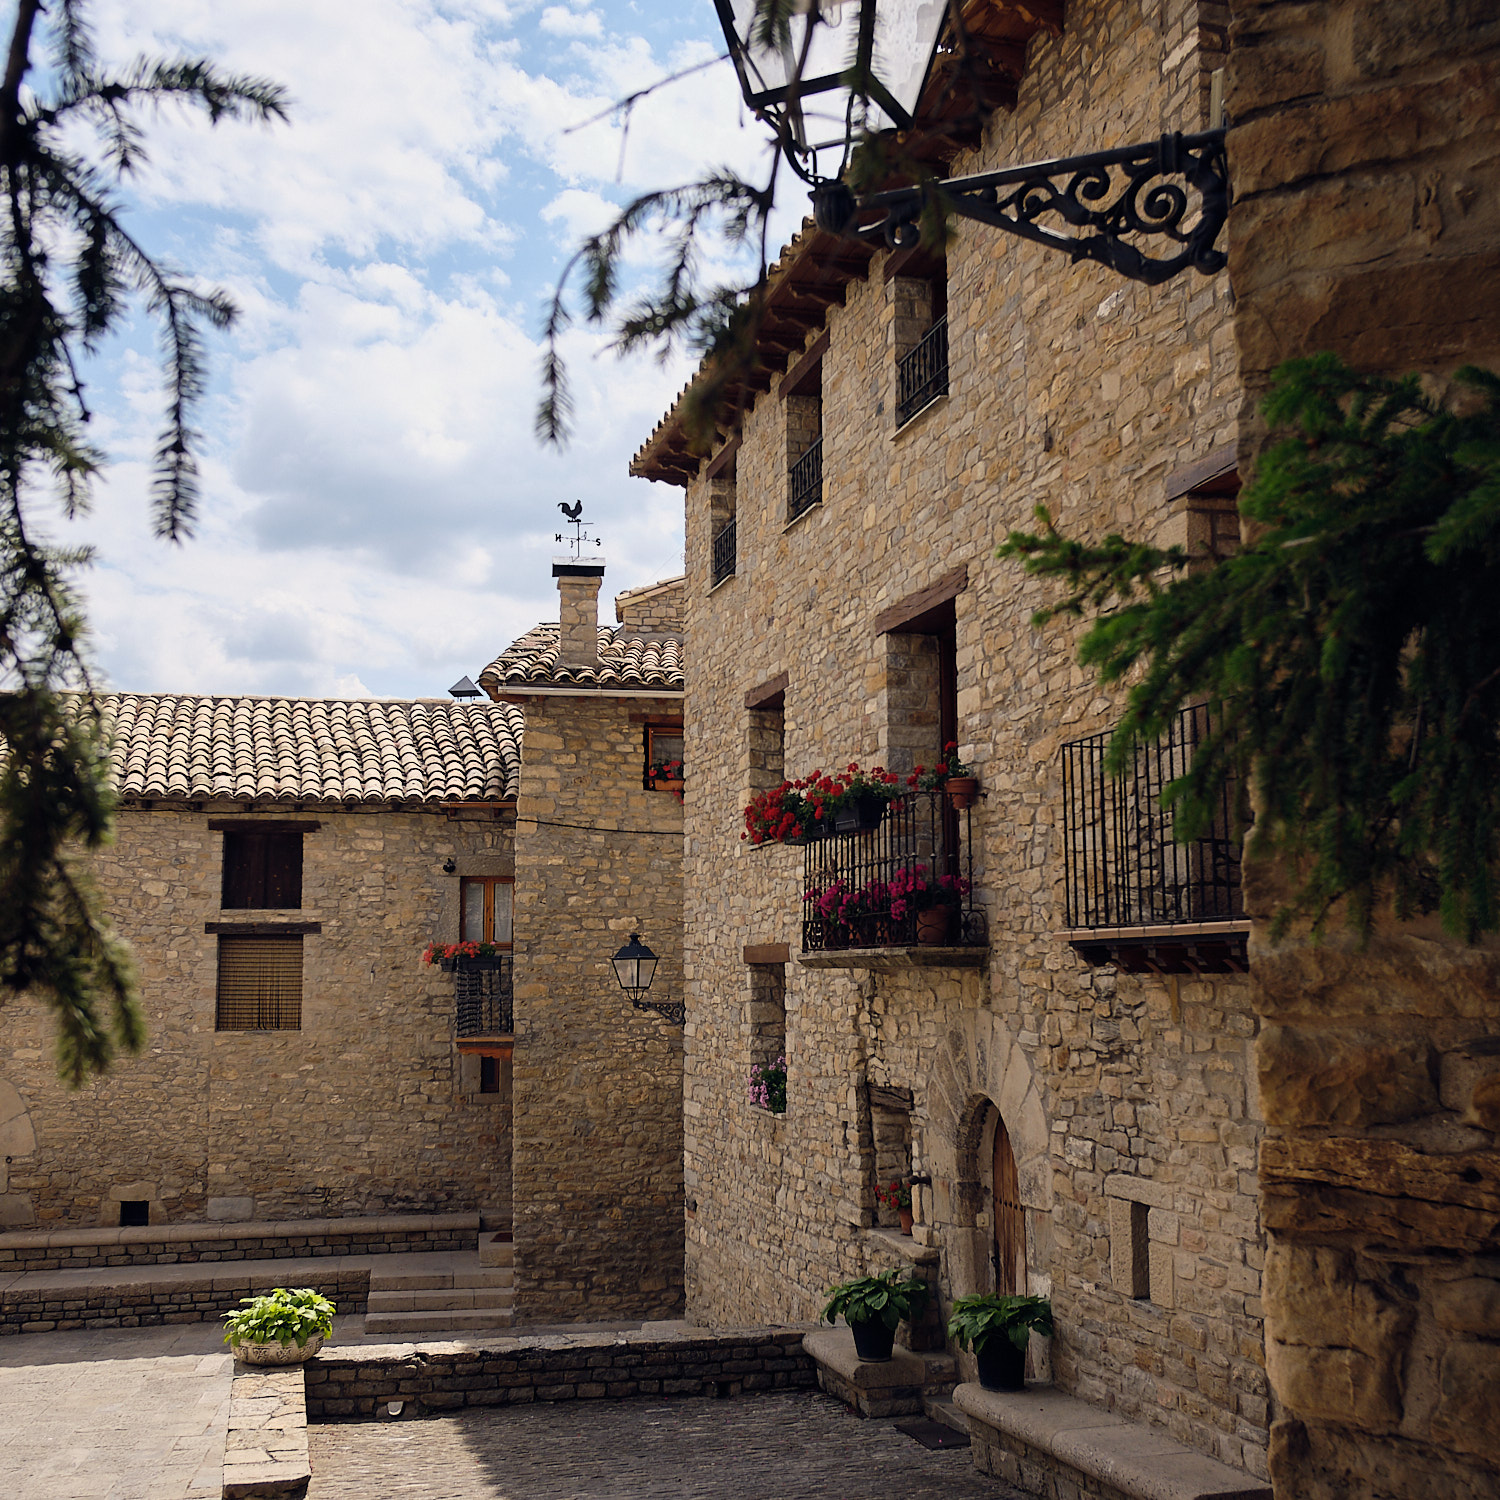 Cloister and the smallest middle age town with a former Bishop's seat in Spain